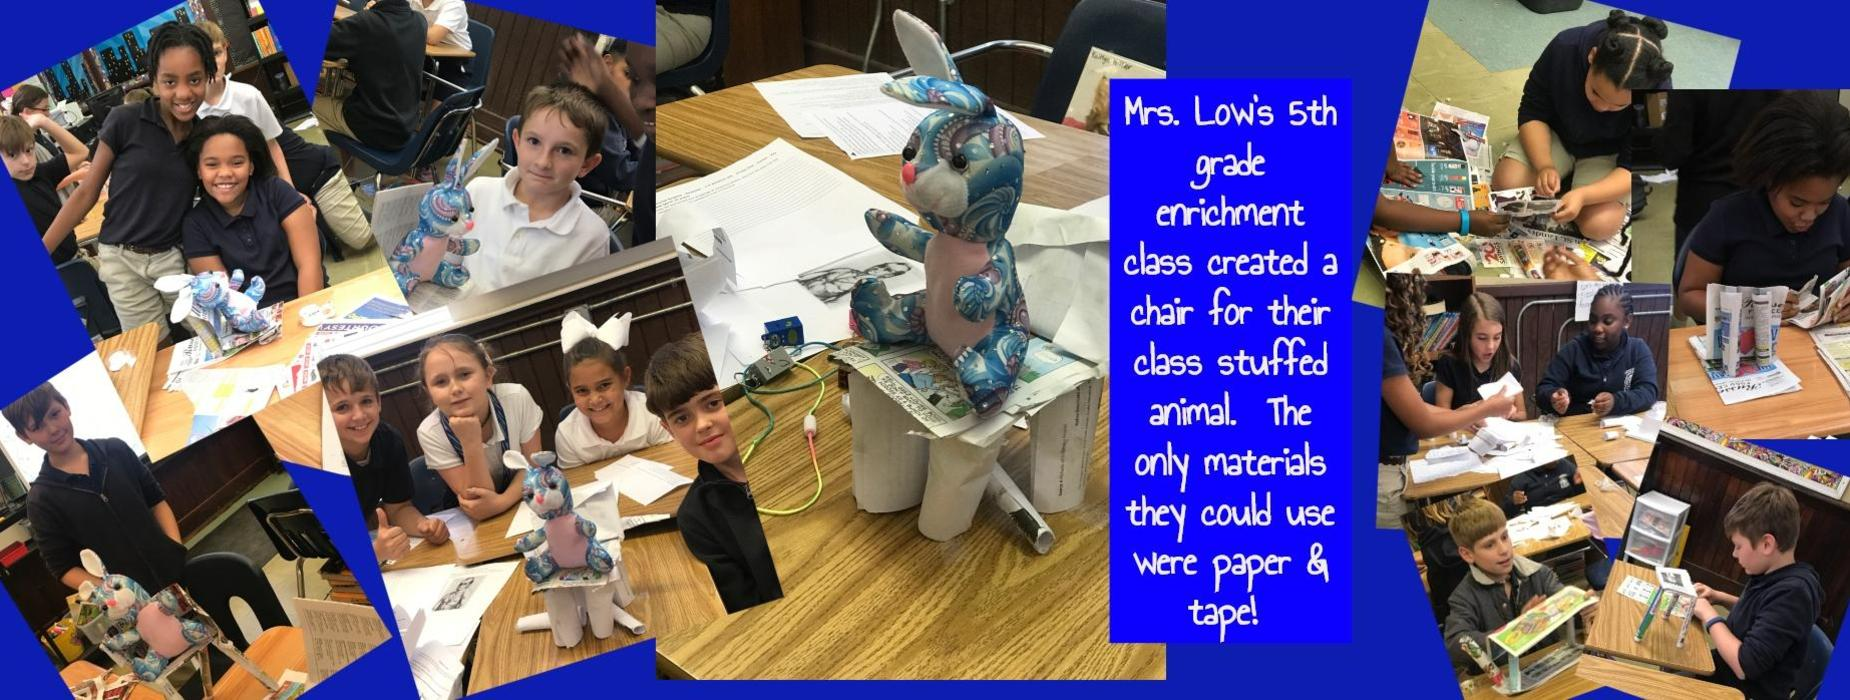 Mrs. Low's 5th grade enrichment class created a chair for their class stuffed animal.  The only materials they could use were paper & tape!